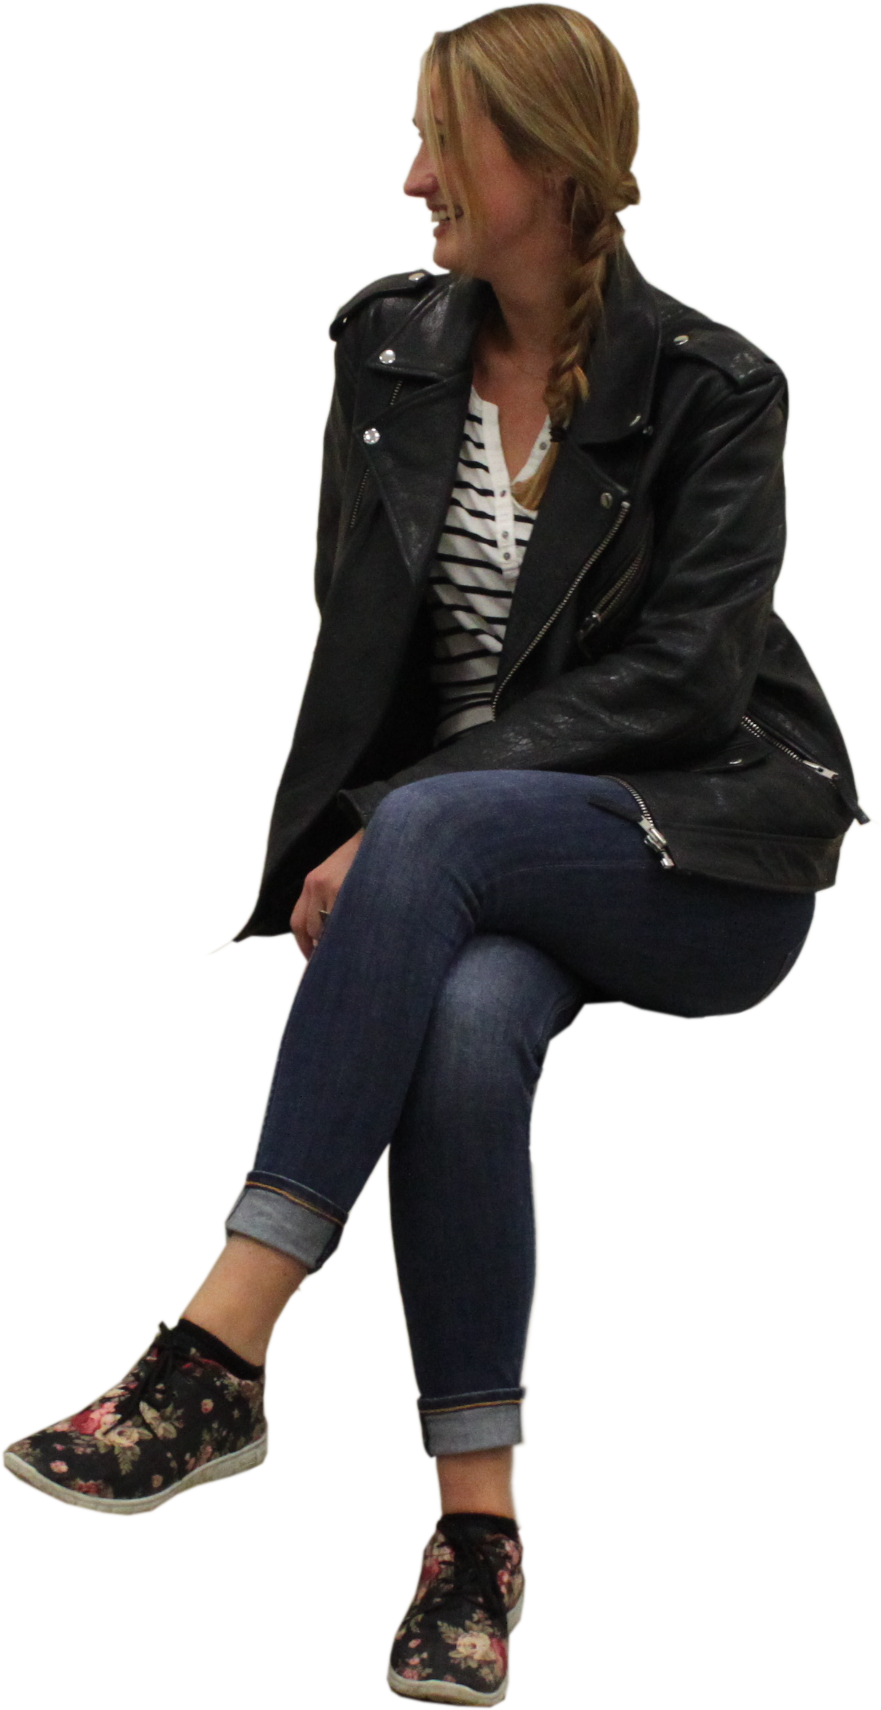 Female clipart business suit. Sitting man png images